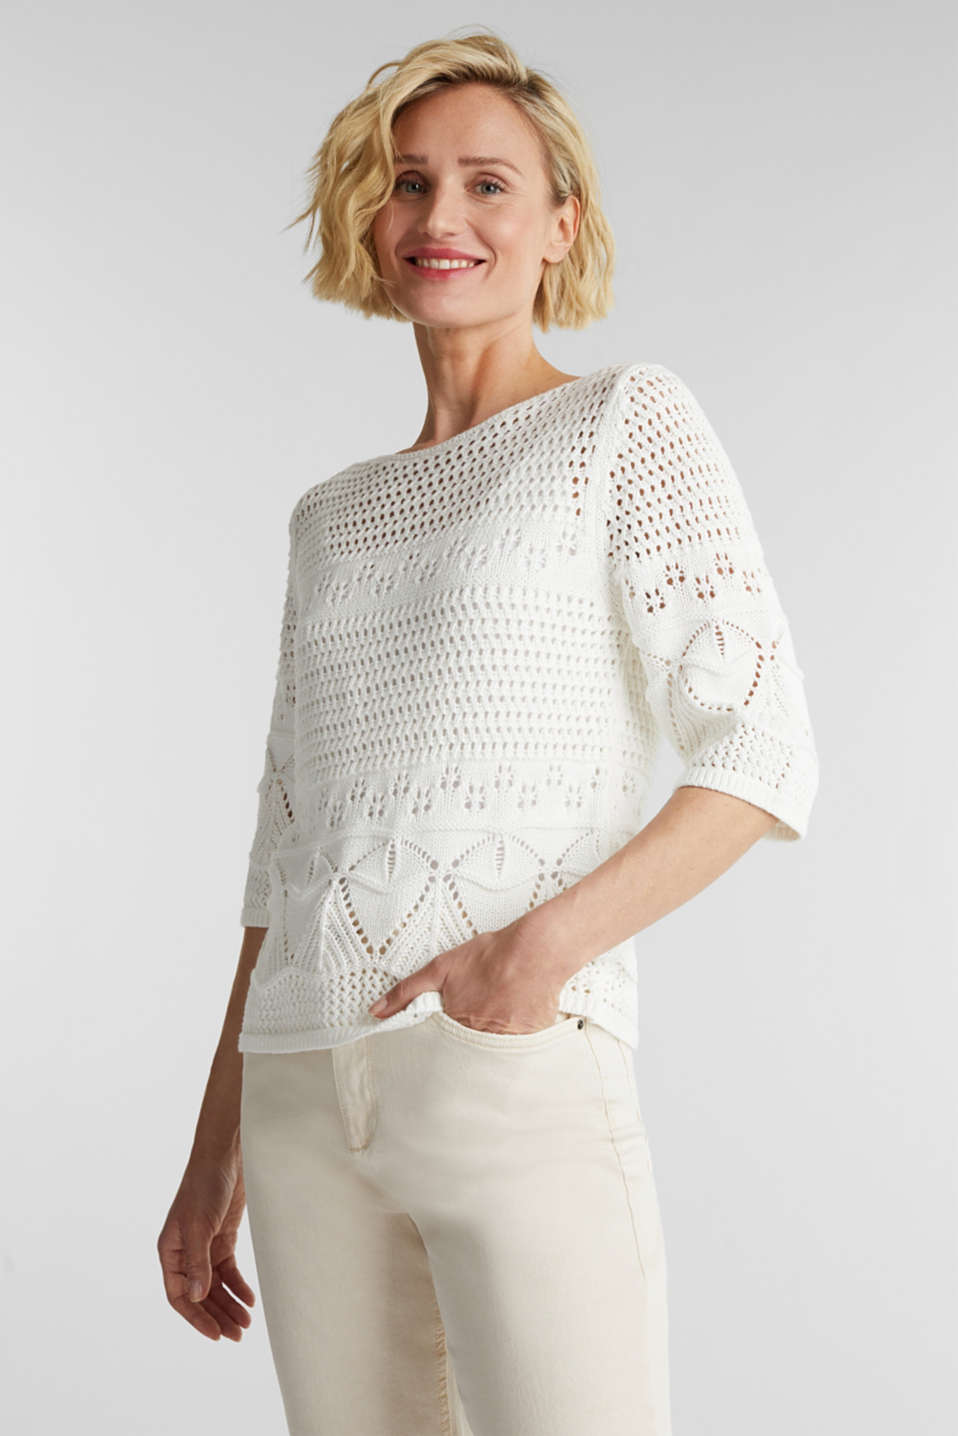 Esprit - Crocheted jumper made of 100% organic cotton